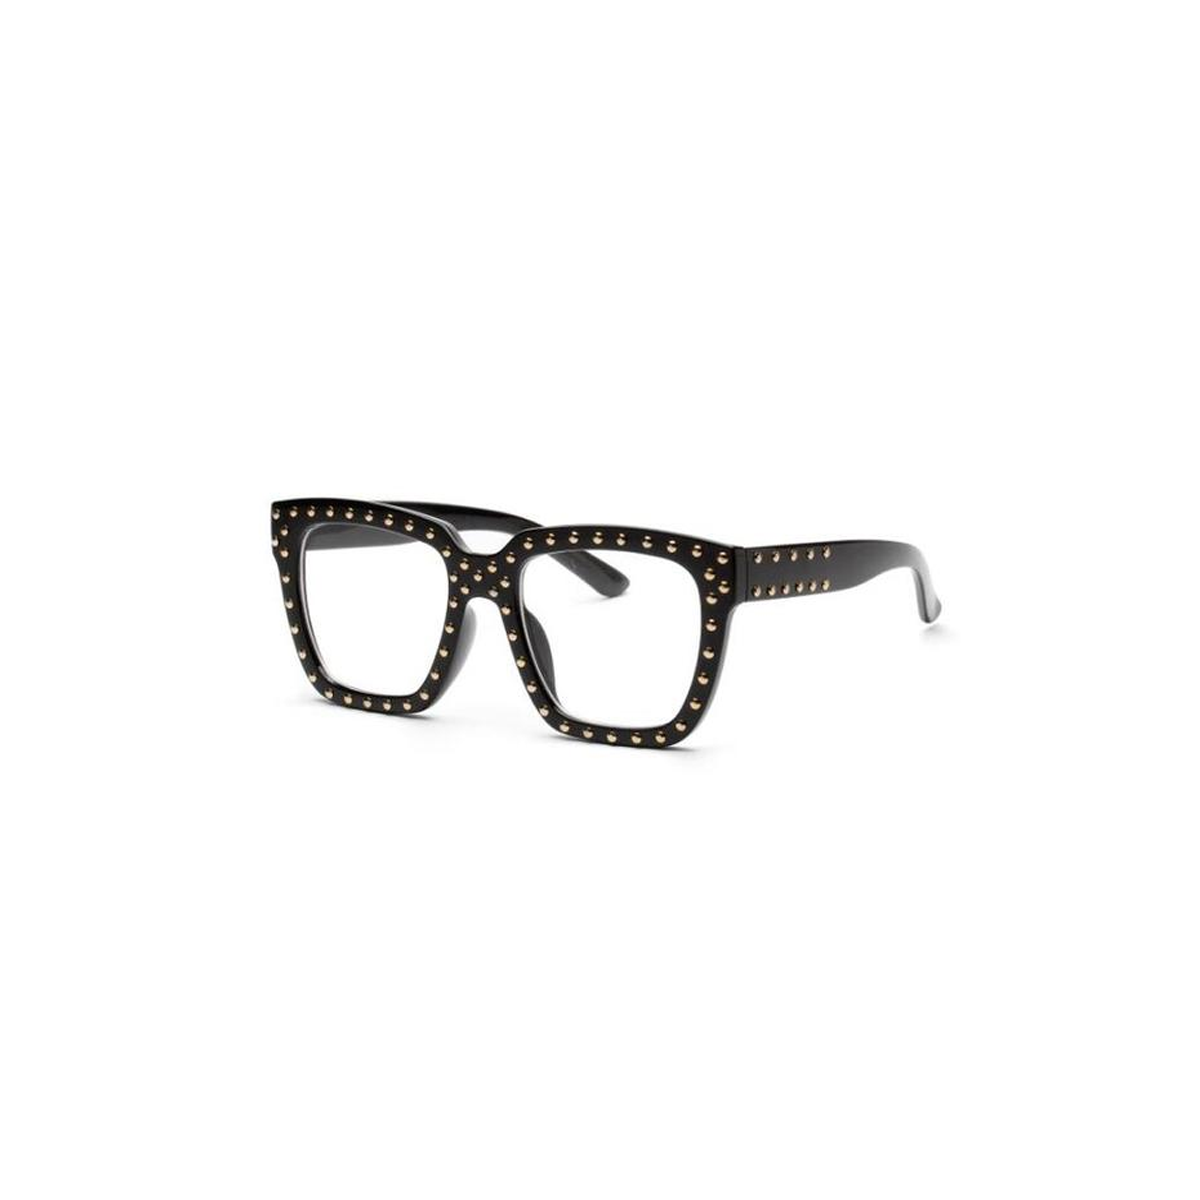 3fef2d6029 Kylie - Square studded frame with clear lens shade women sunglasses ...